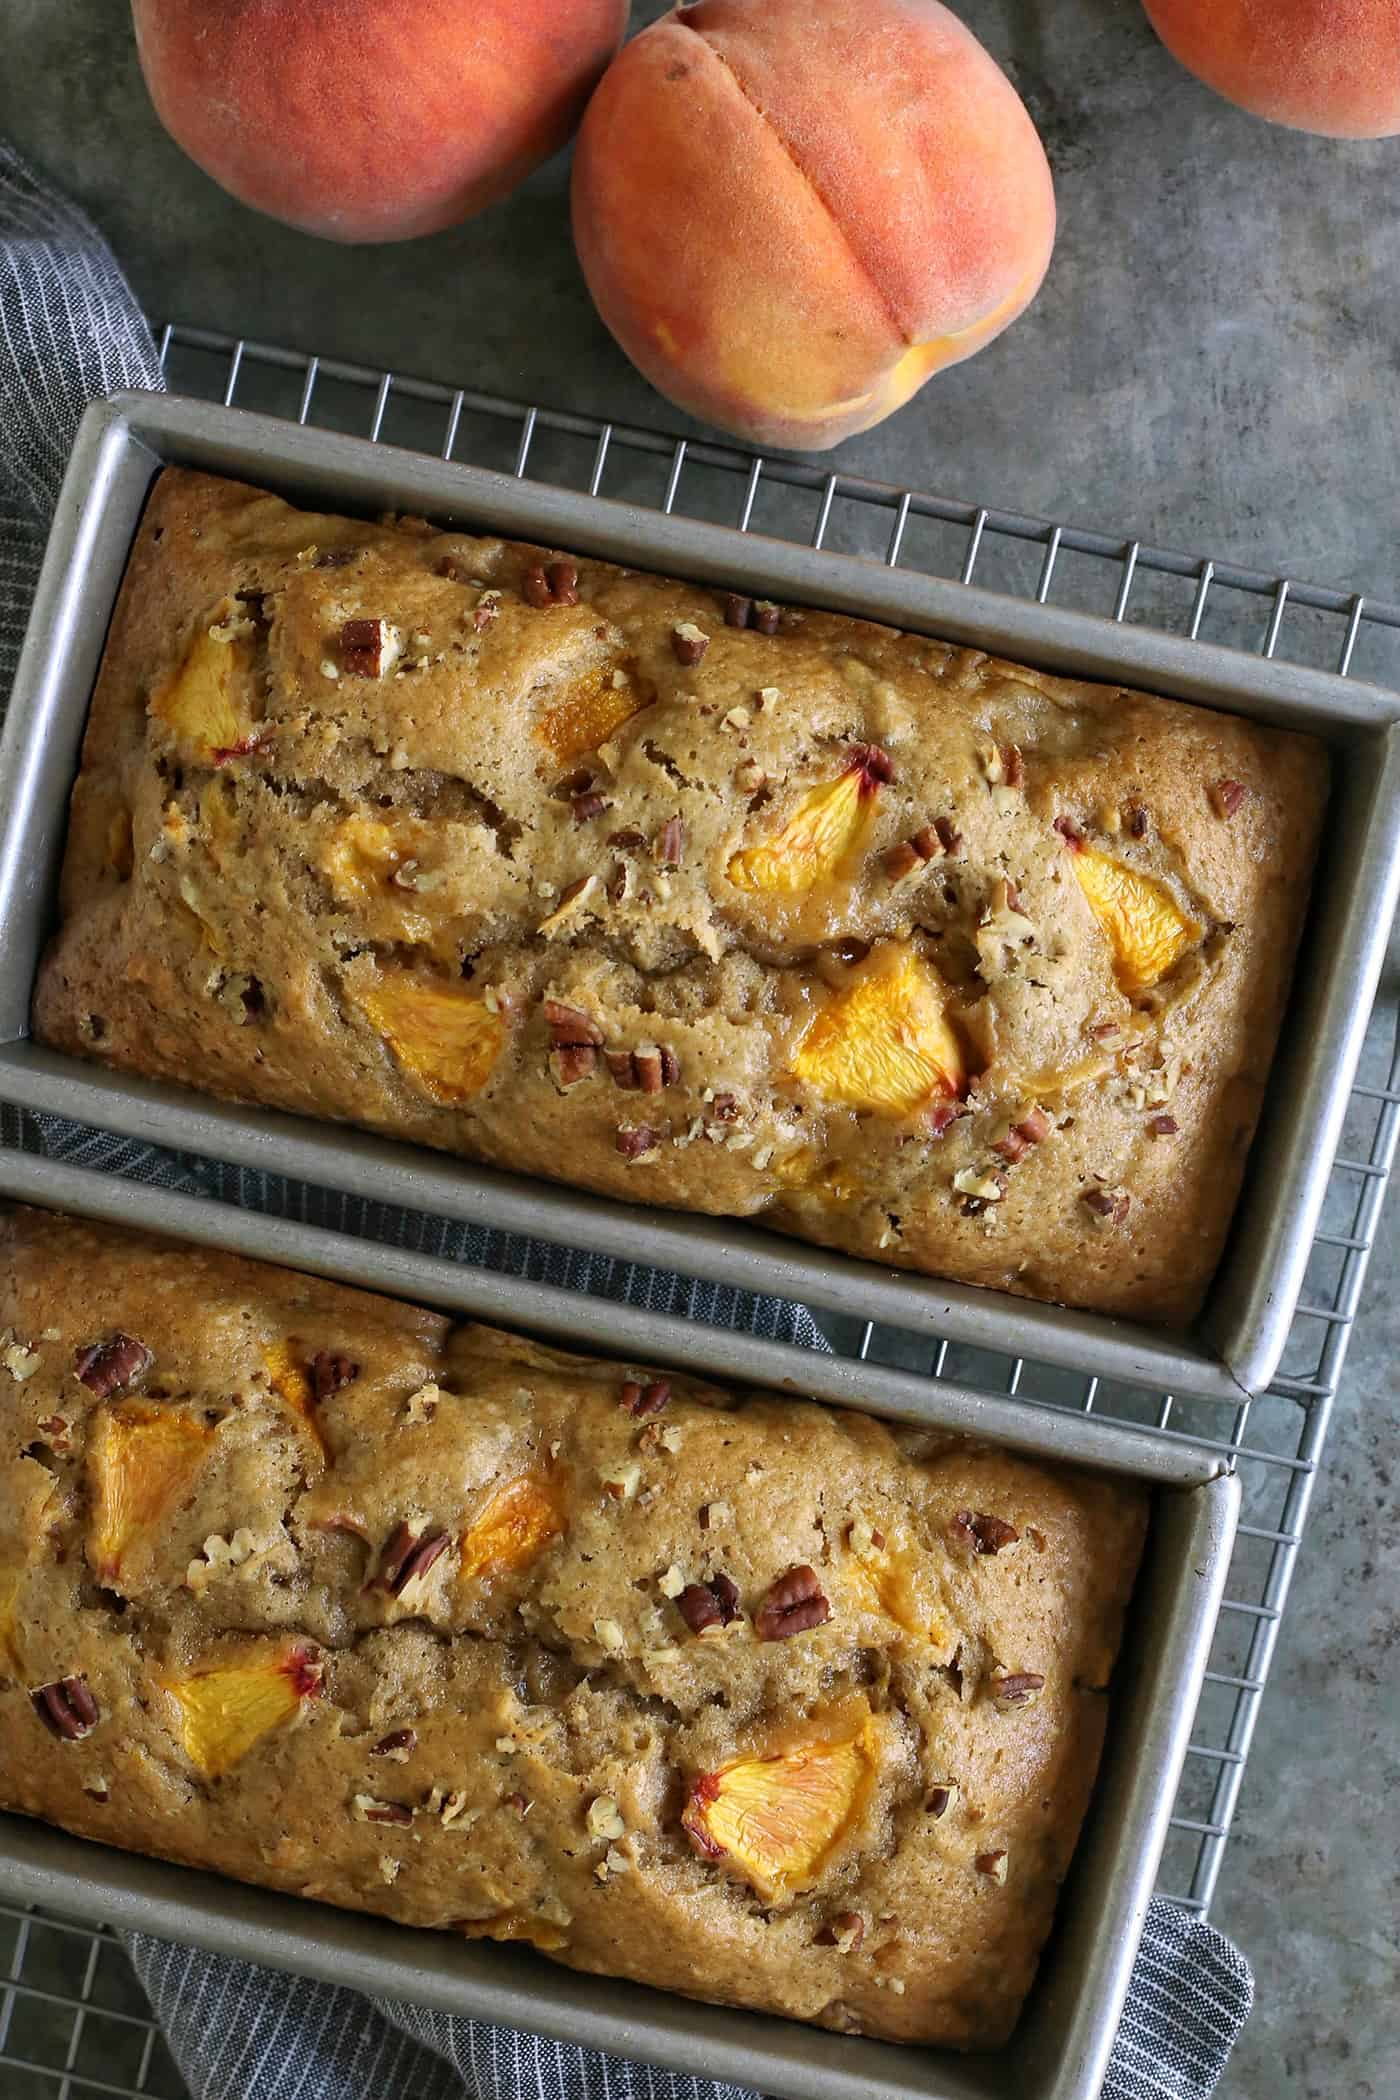 two loaves of peach bread still in the baking pans